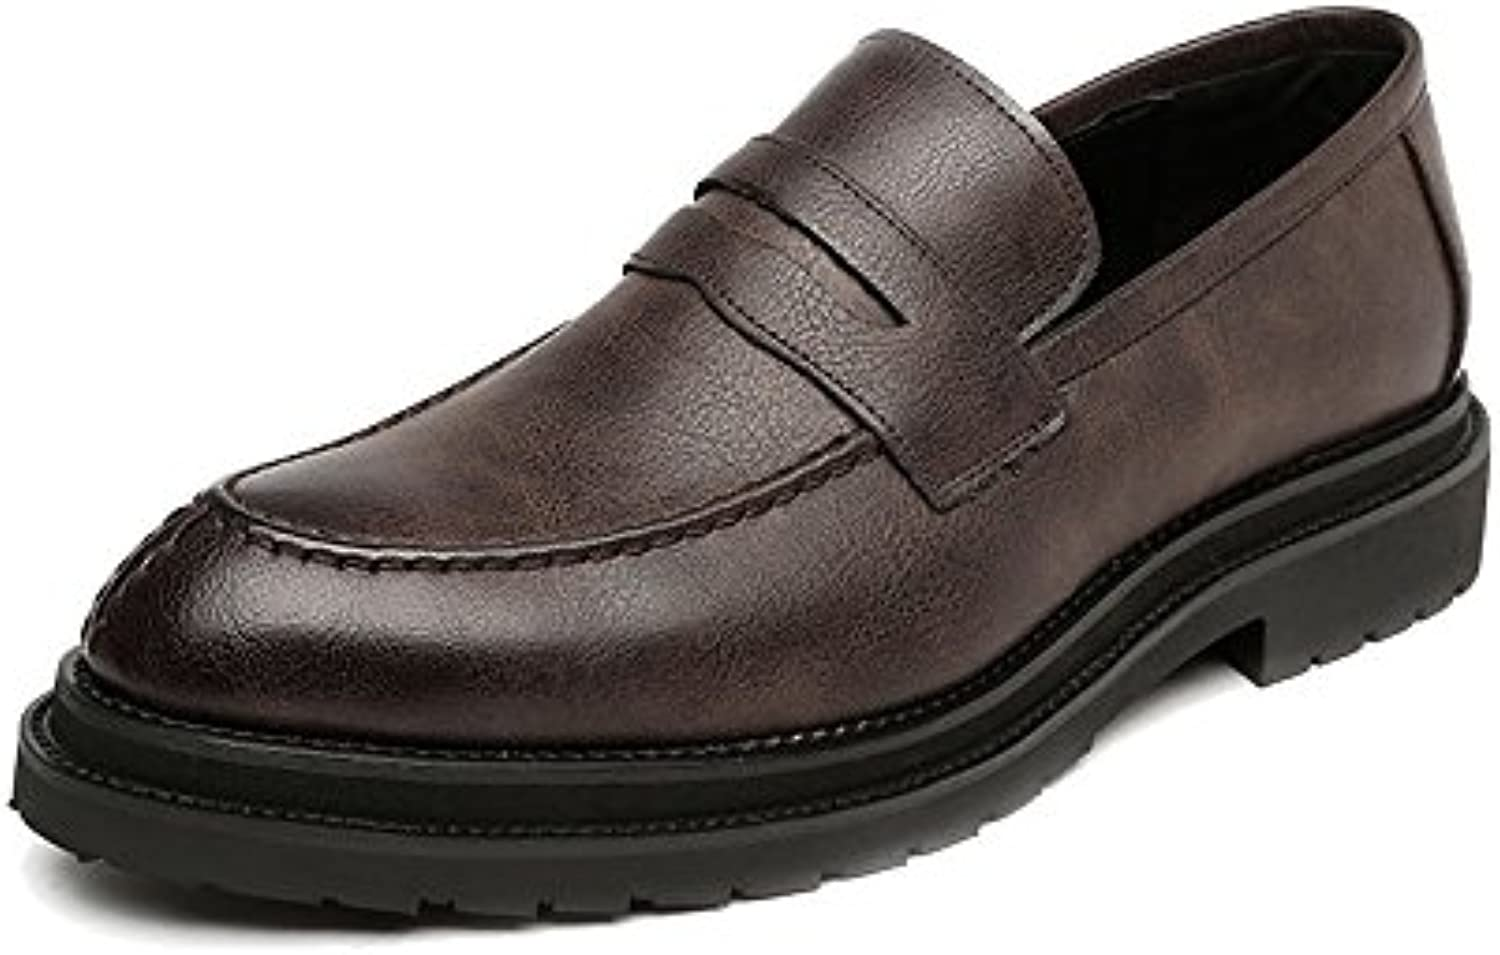 FeiNianJSh Scarpe Casual Uomo Slip-on da Uomo Scarpe da Lavoro Smooth glassato PU Leather Upper Mocassini Outsole... | Materiale preferito